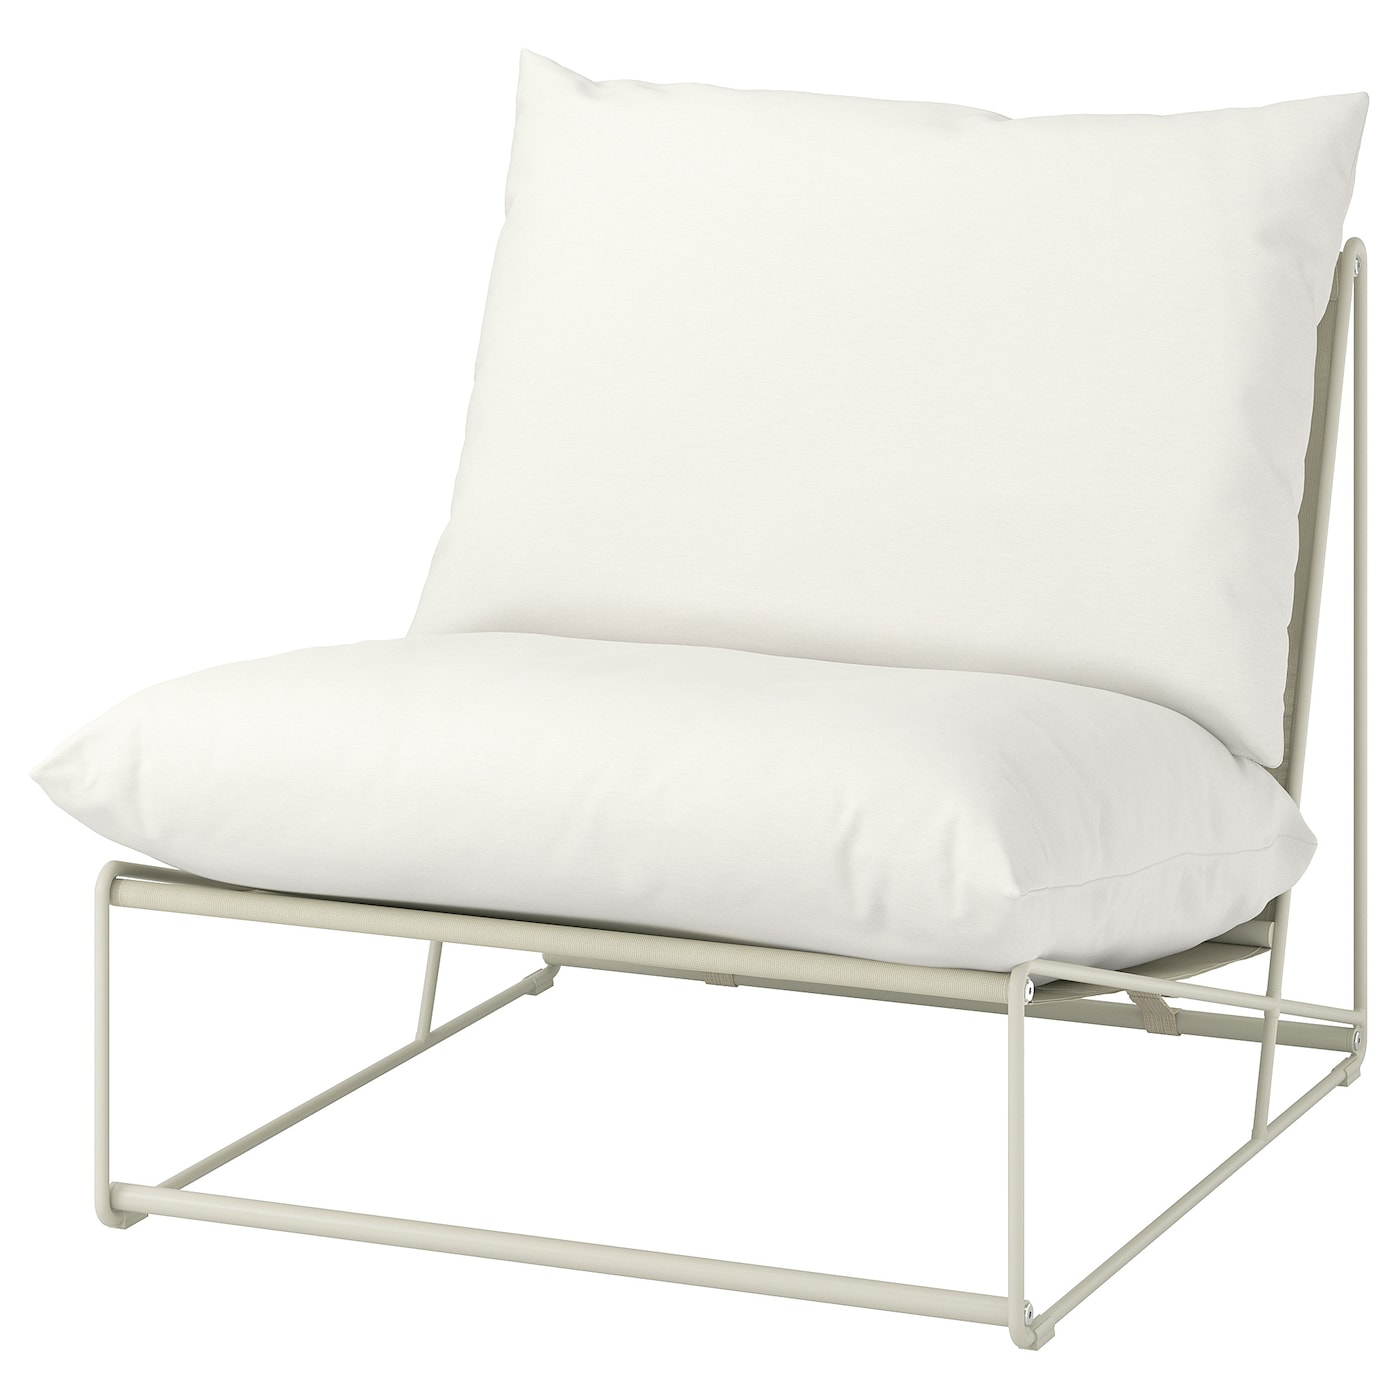 HAVSTEN Easy chair, in/outdoor - beige 7x7x7 cm